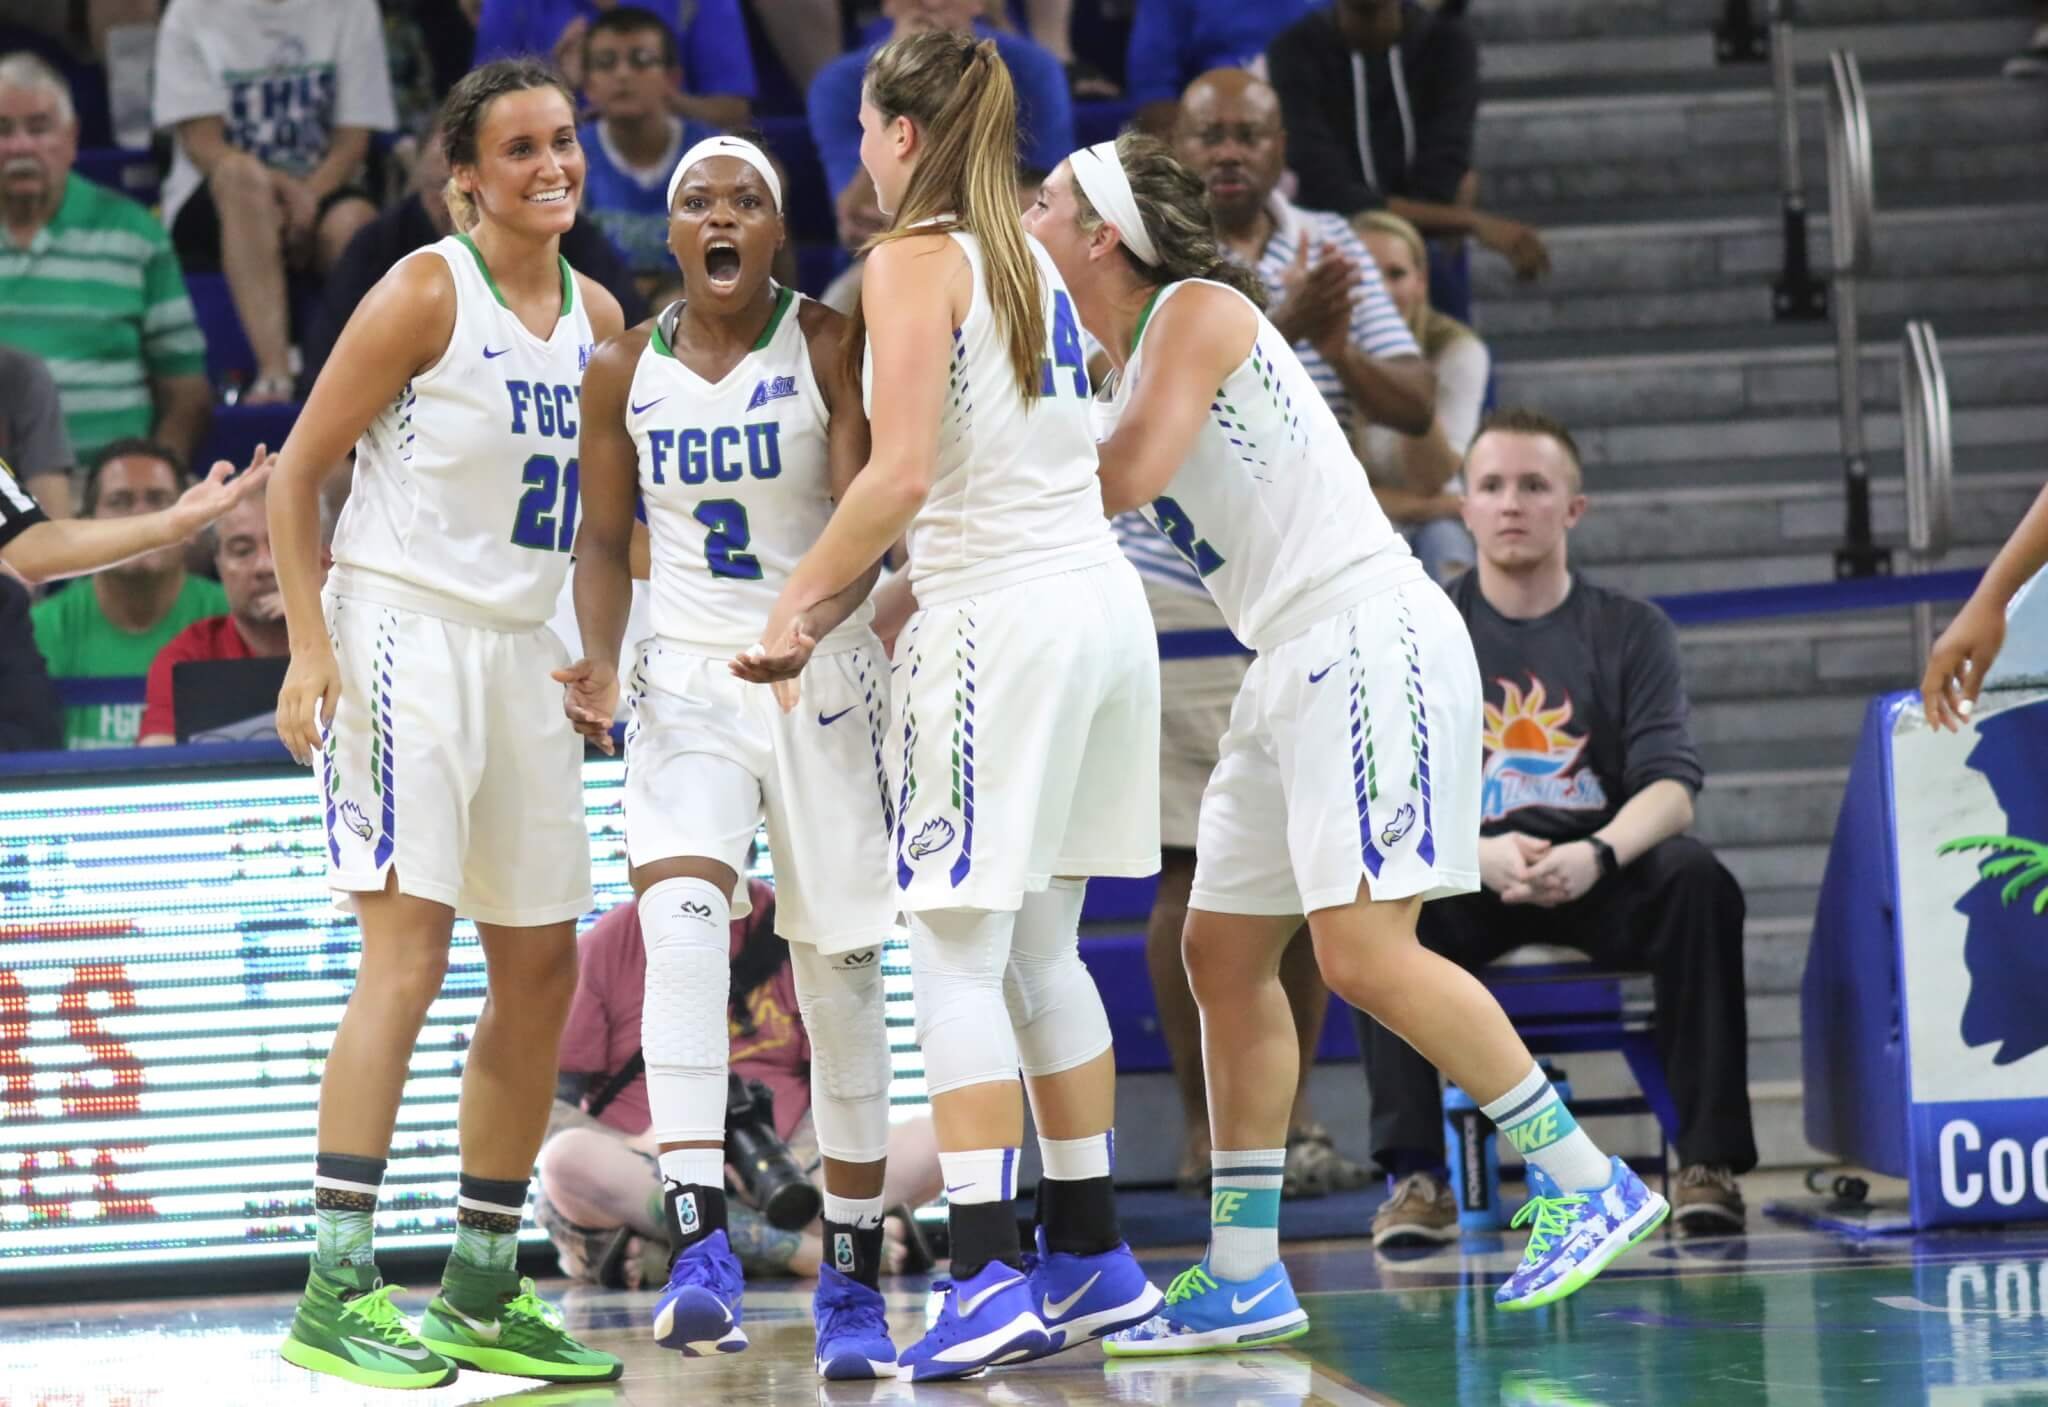 FGCU women to host Bethune-Cookman in first round of WNIT